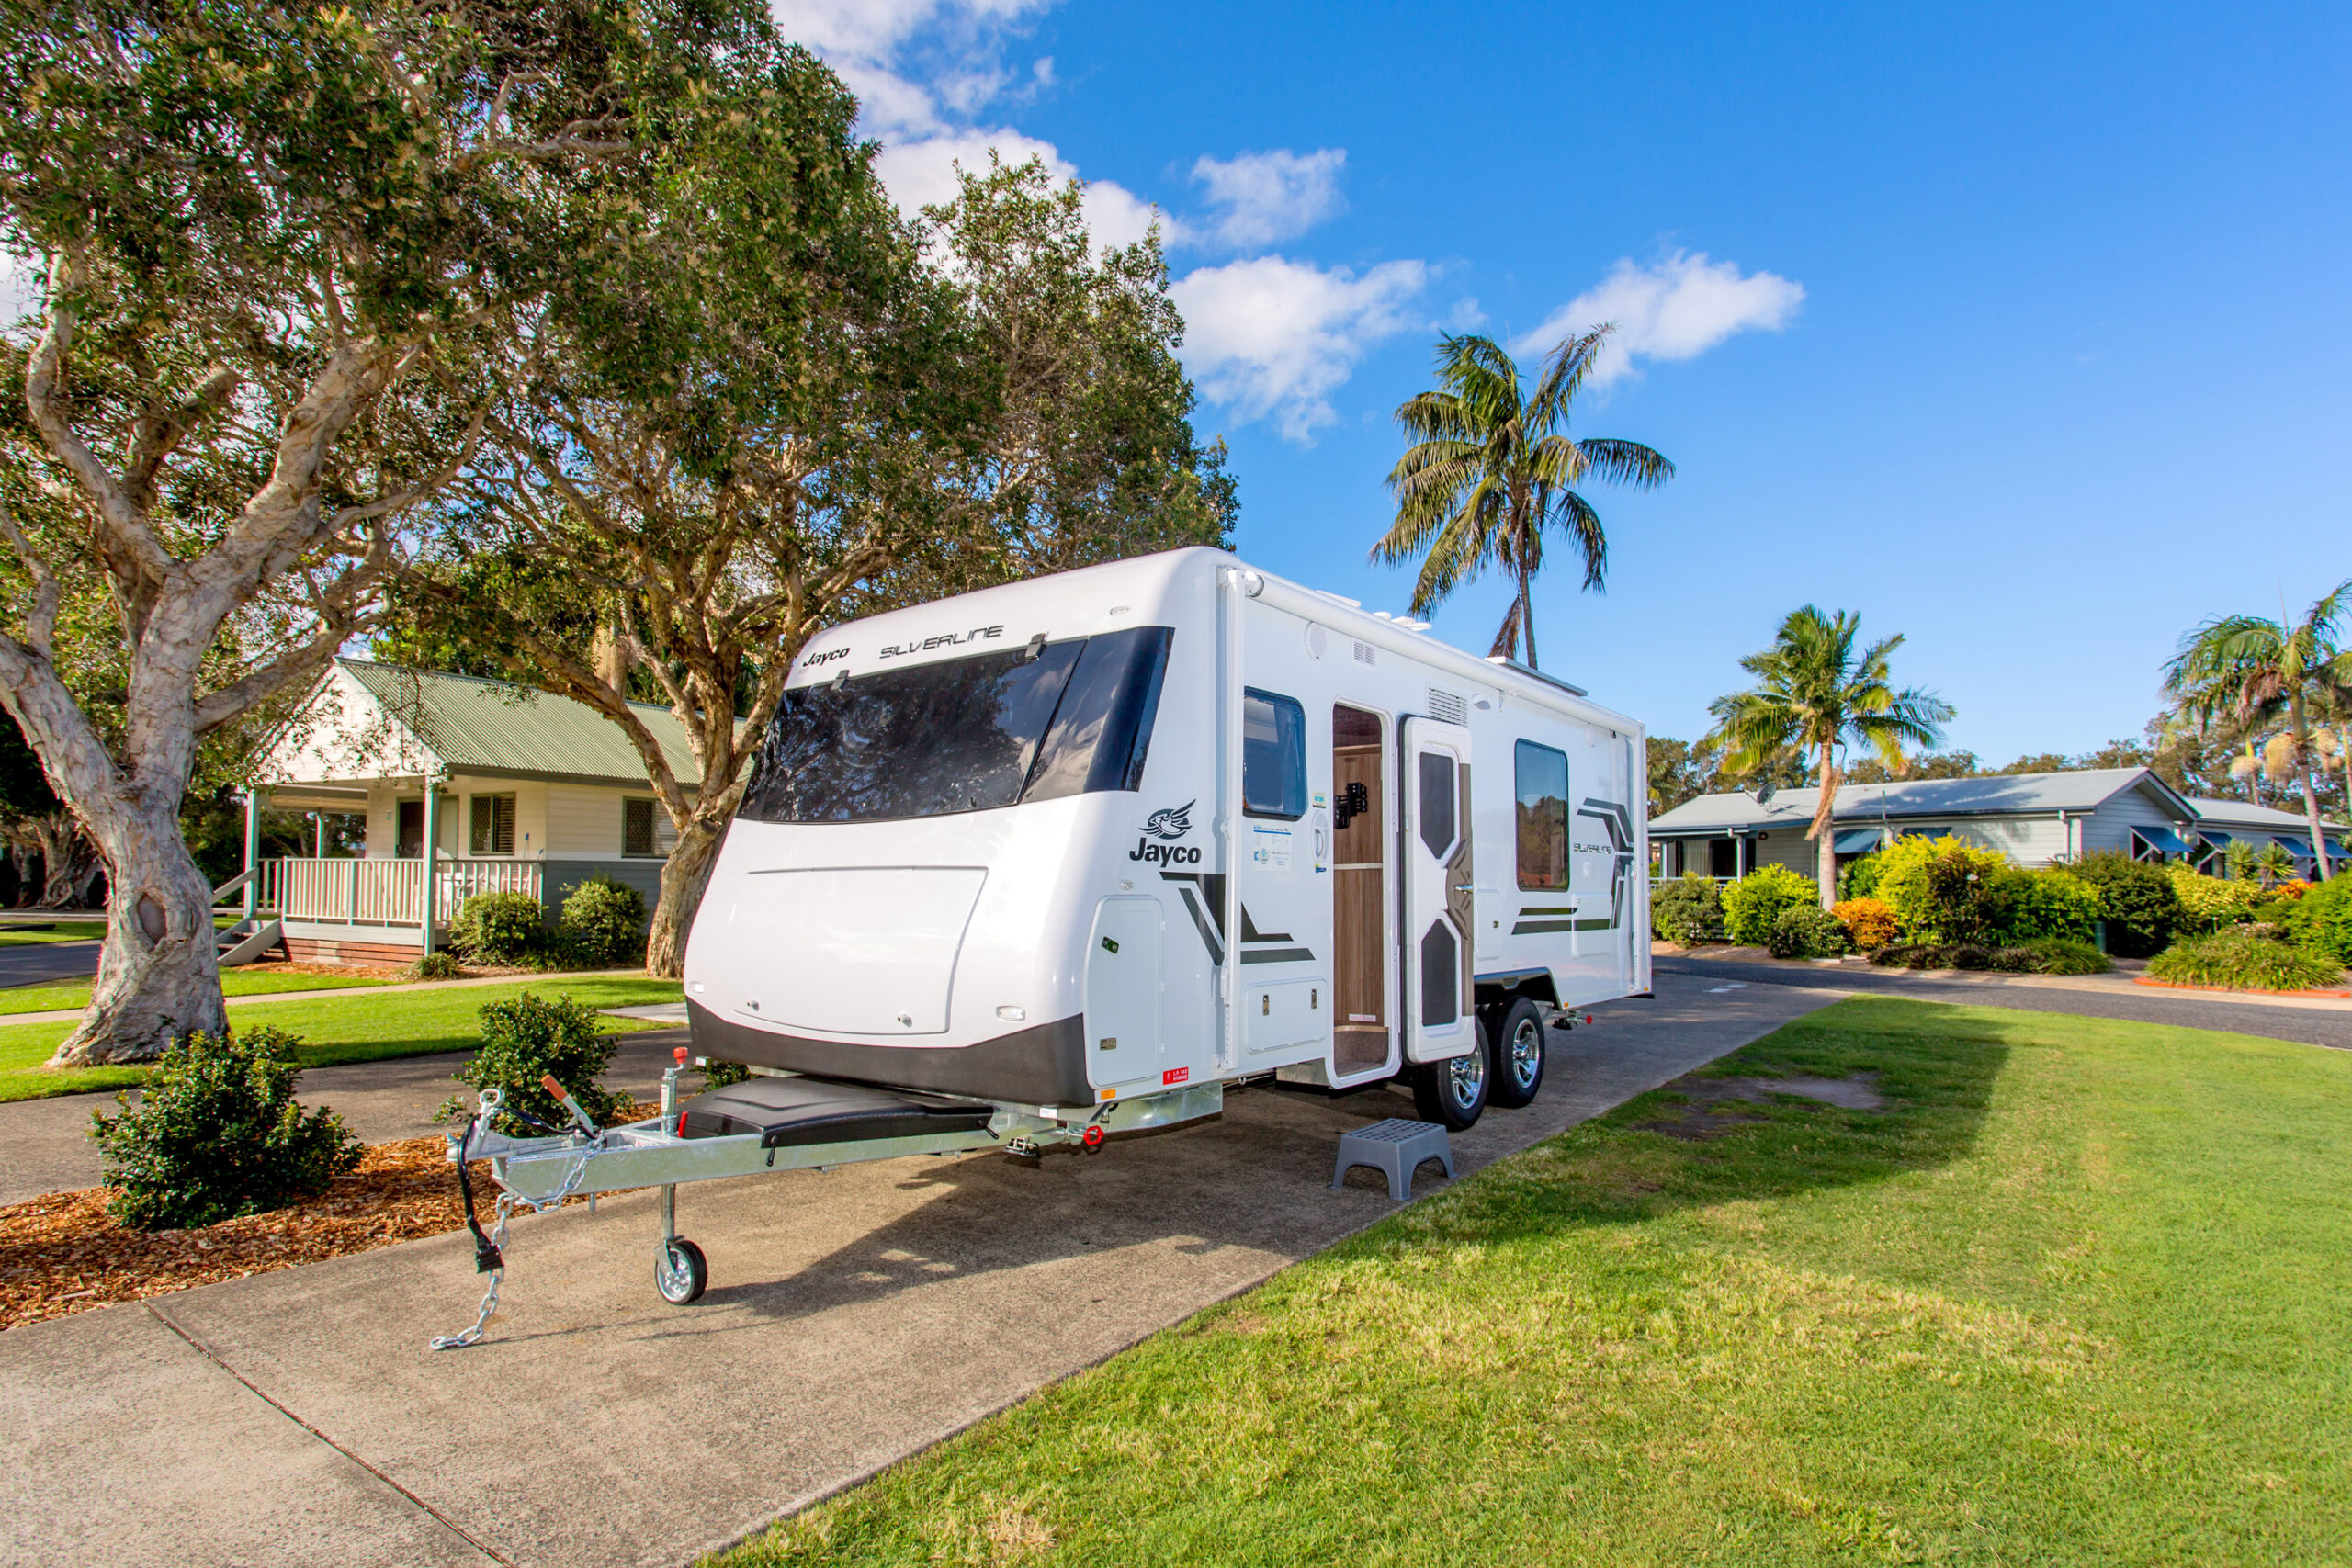 10 useful caravan storage tips and space-saving solutions